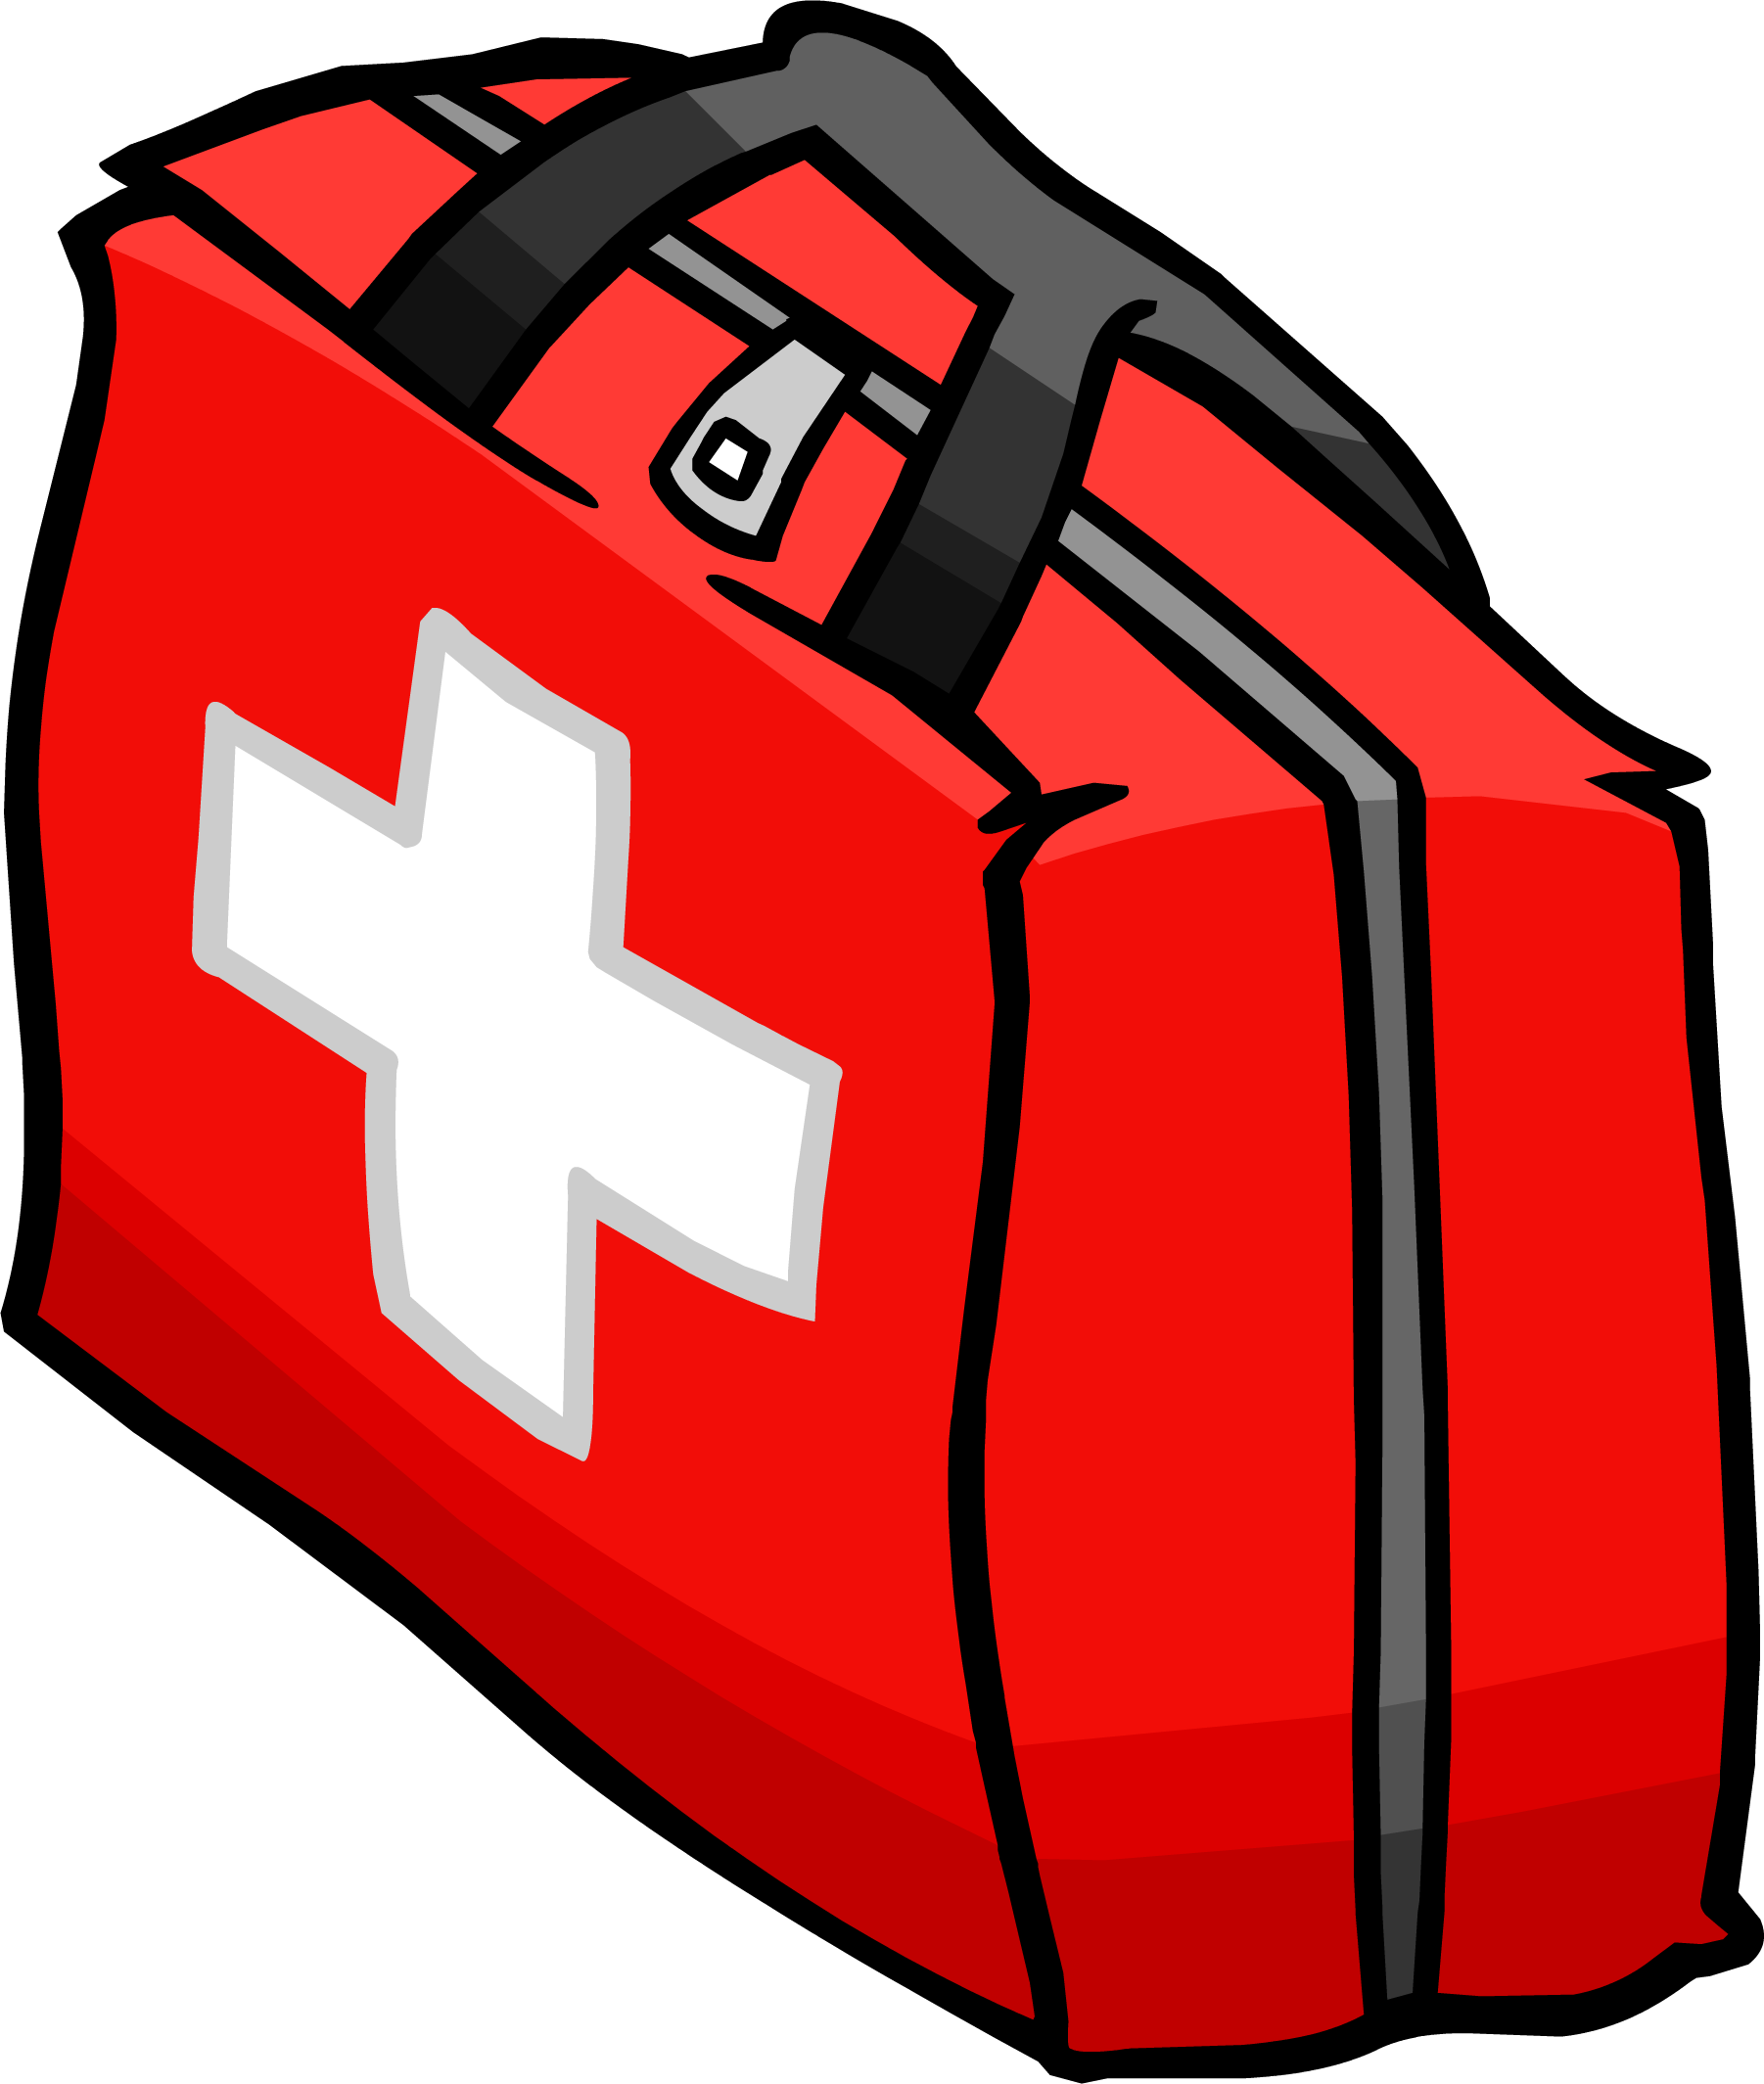 Doctor bag clipart graphic library library Doctor Bag Clipart | Free download best Doctor Bag Clipart on ... graphic library library